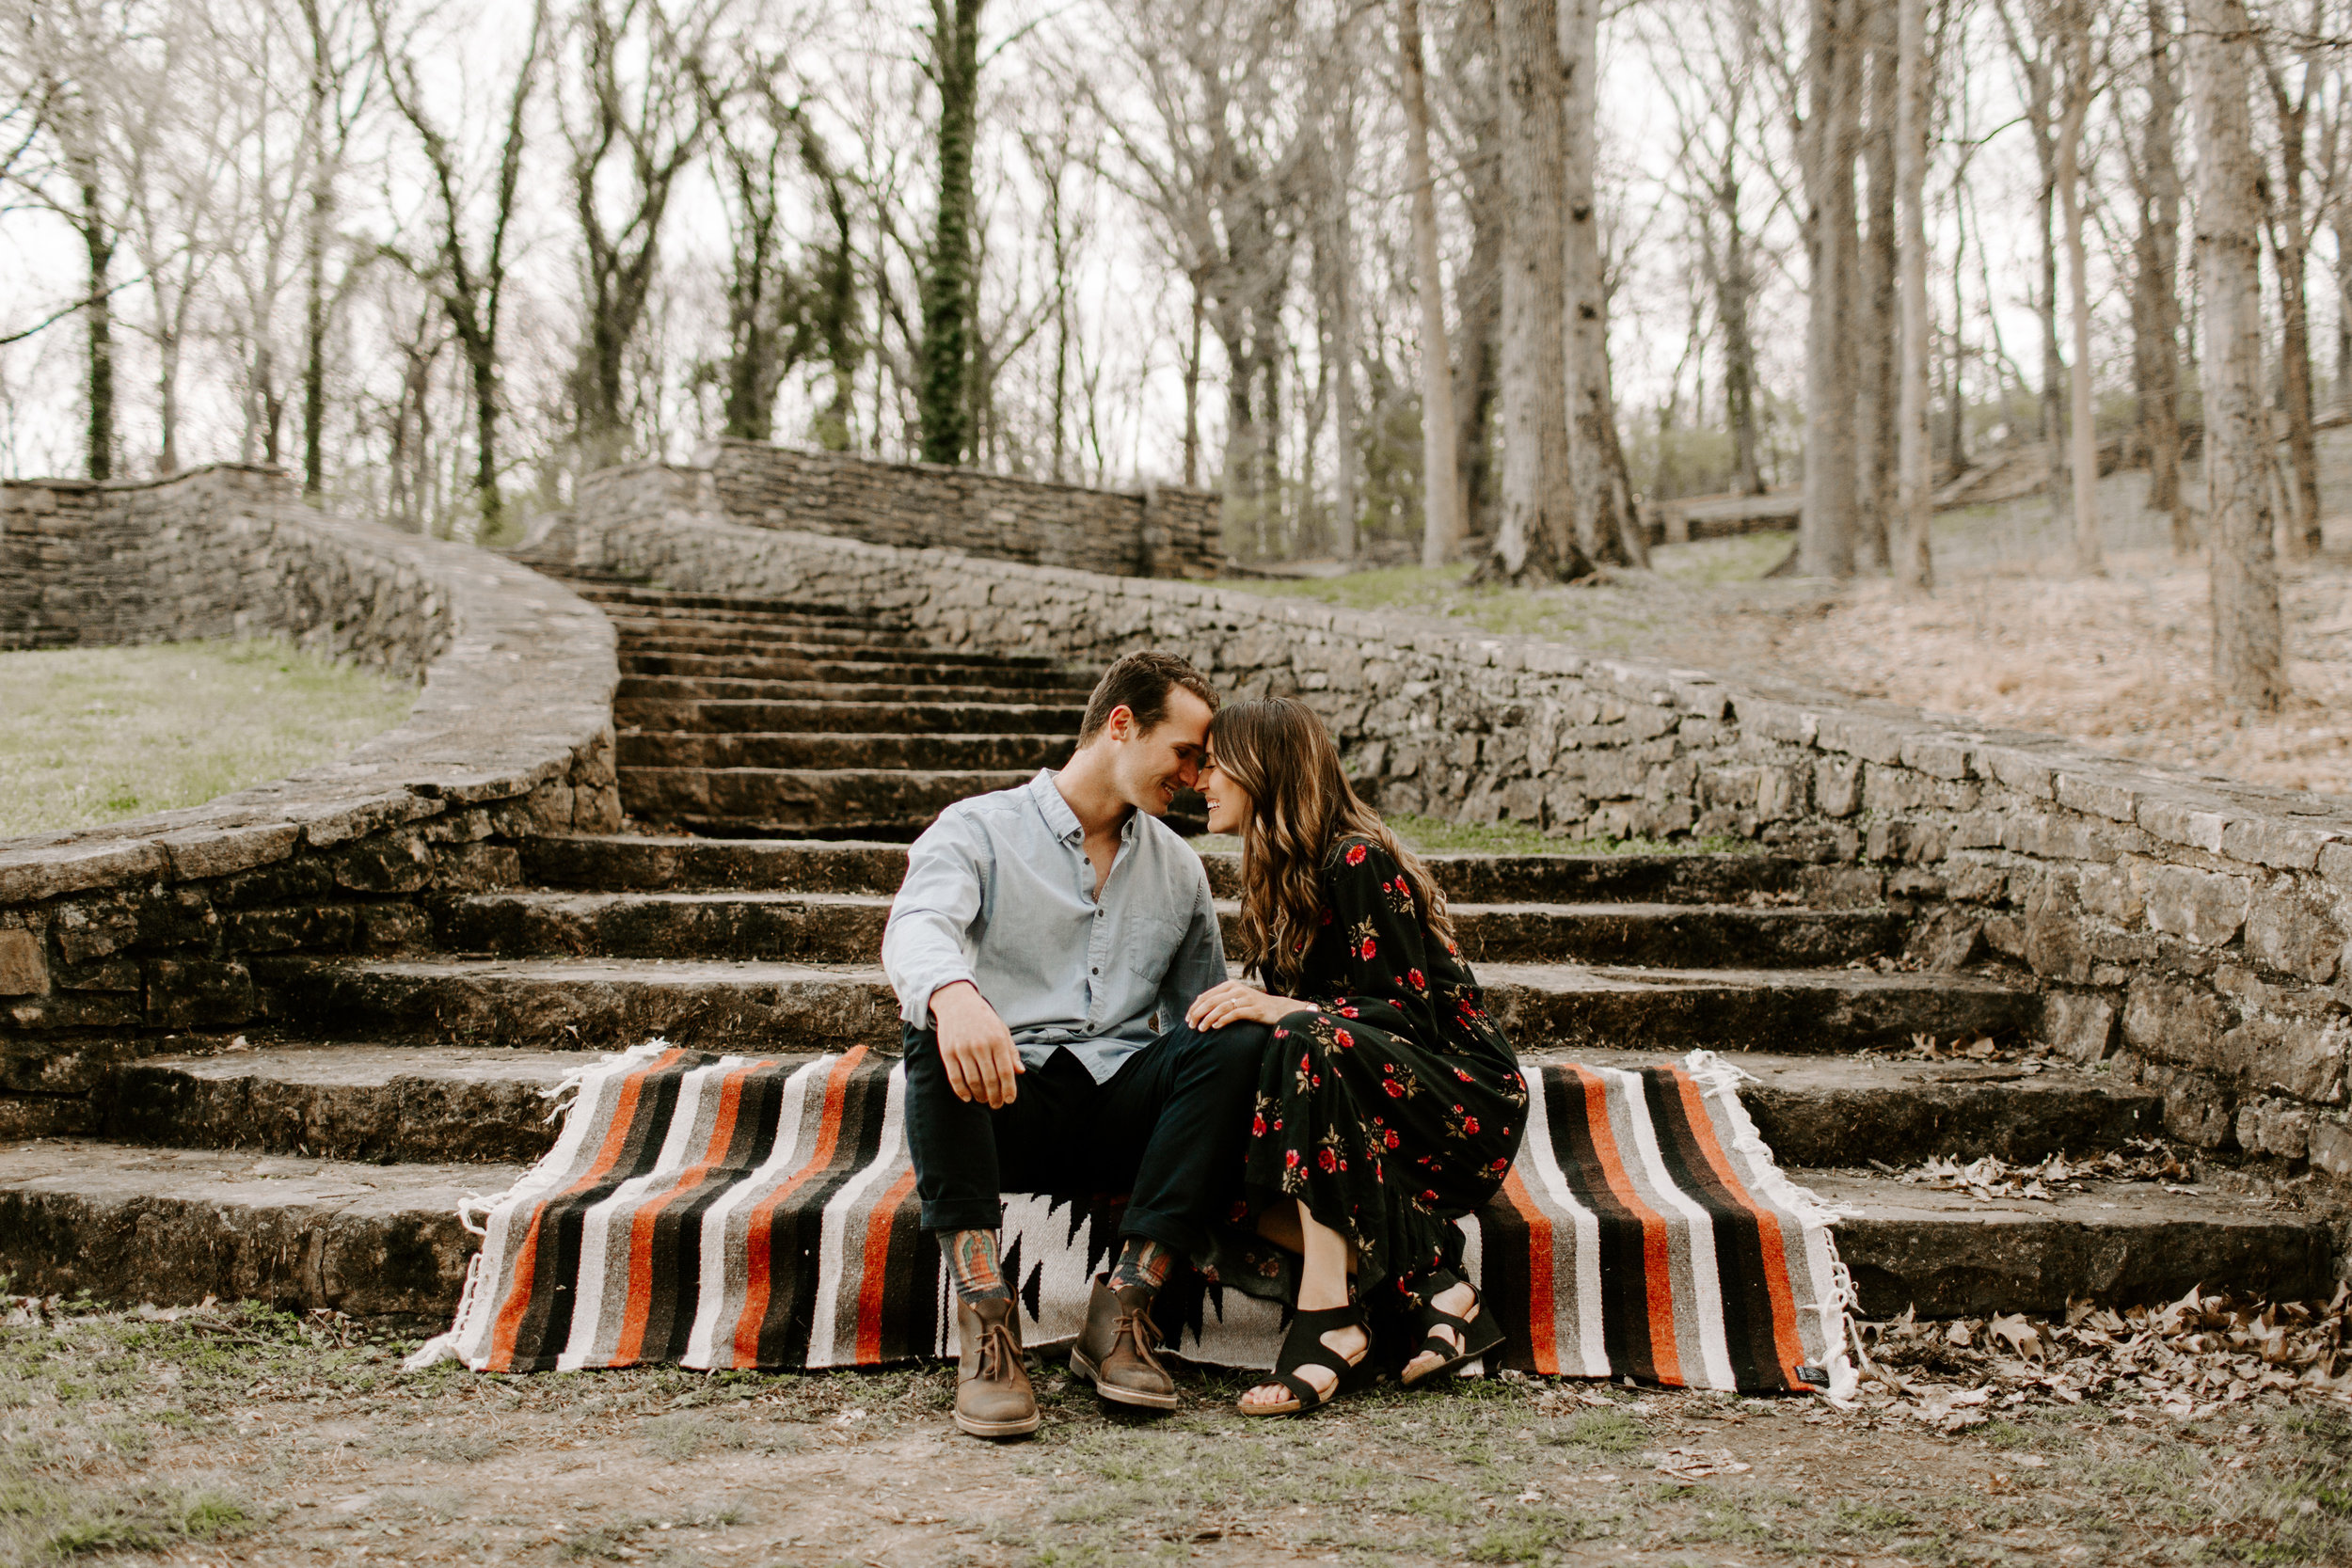 2018.03.16_kayleematt_nashville_engagement_elissavossphotography_previews_10.jpg